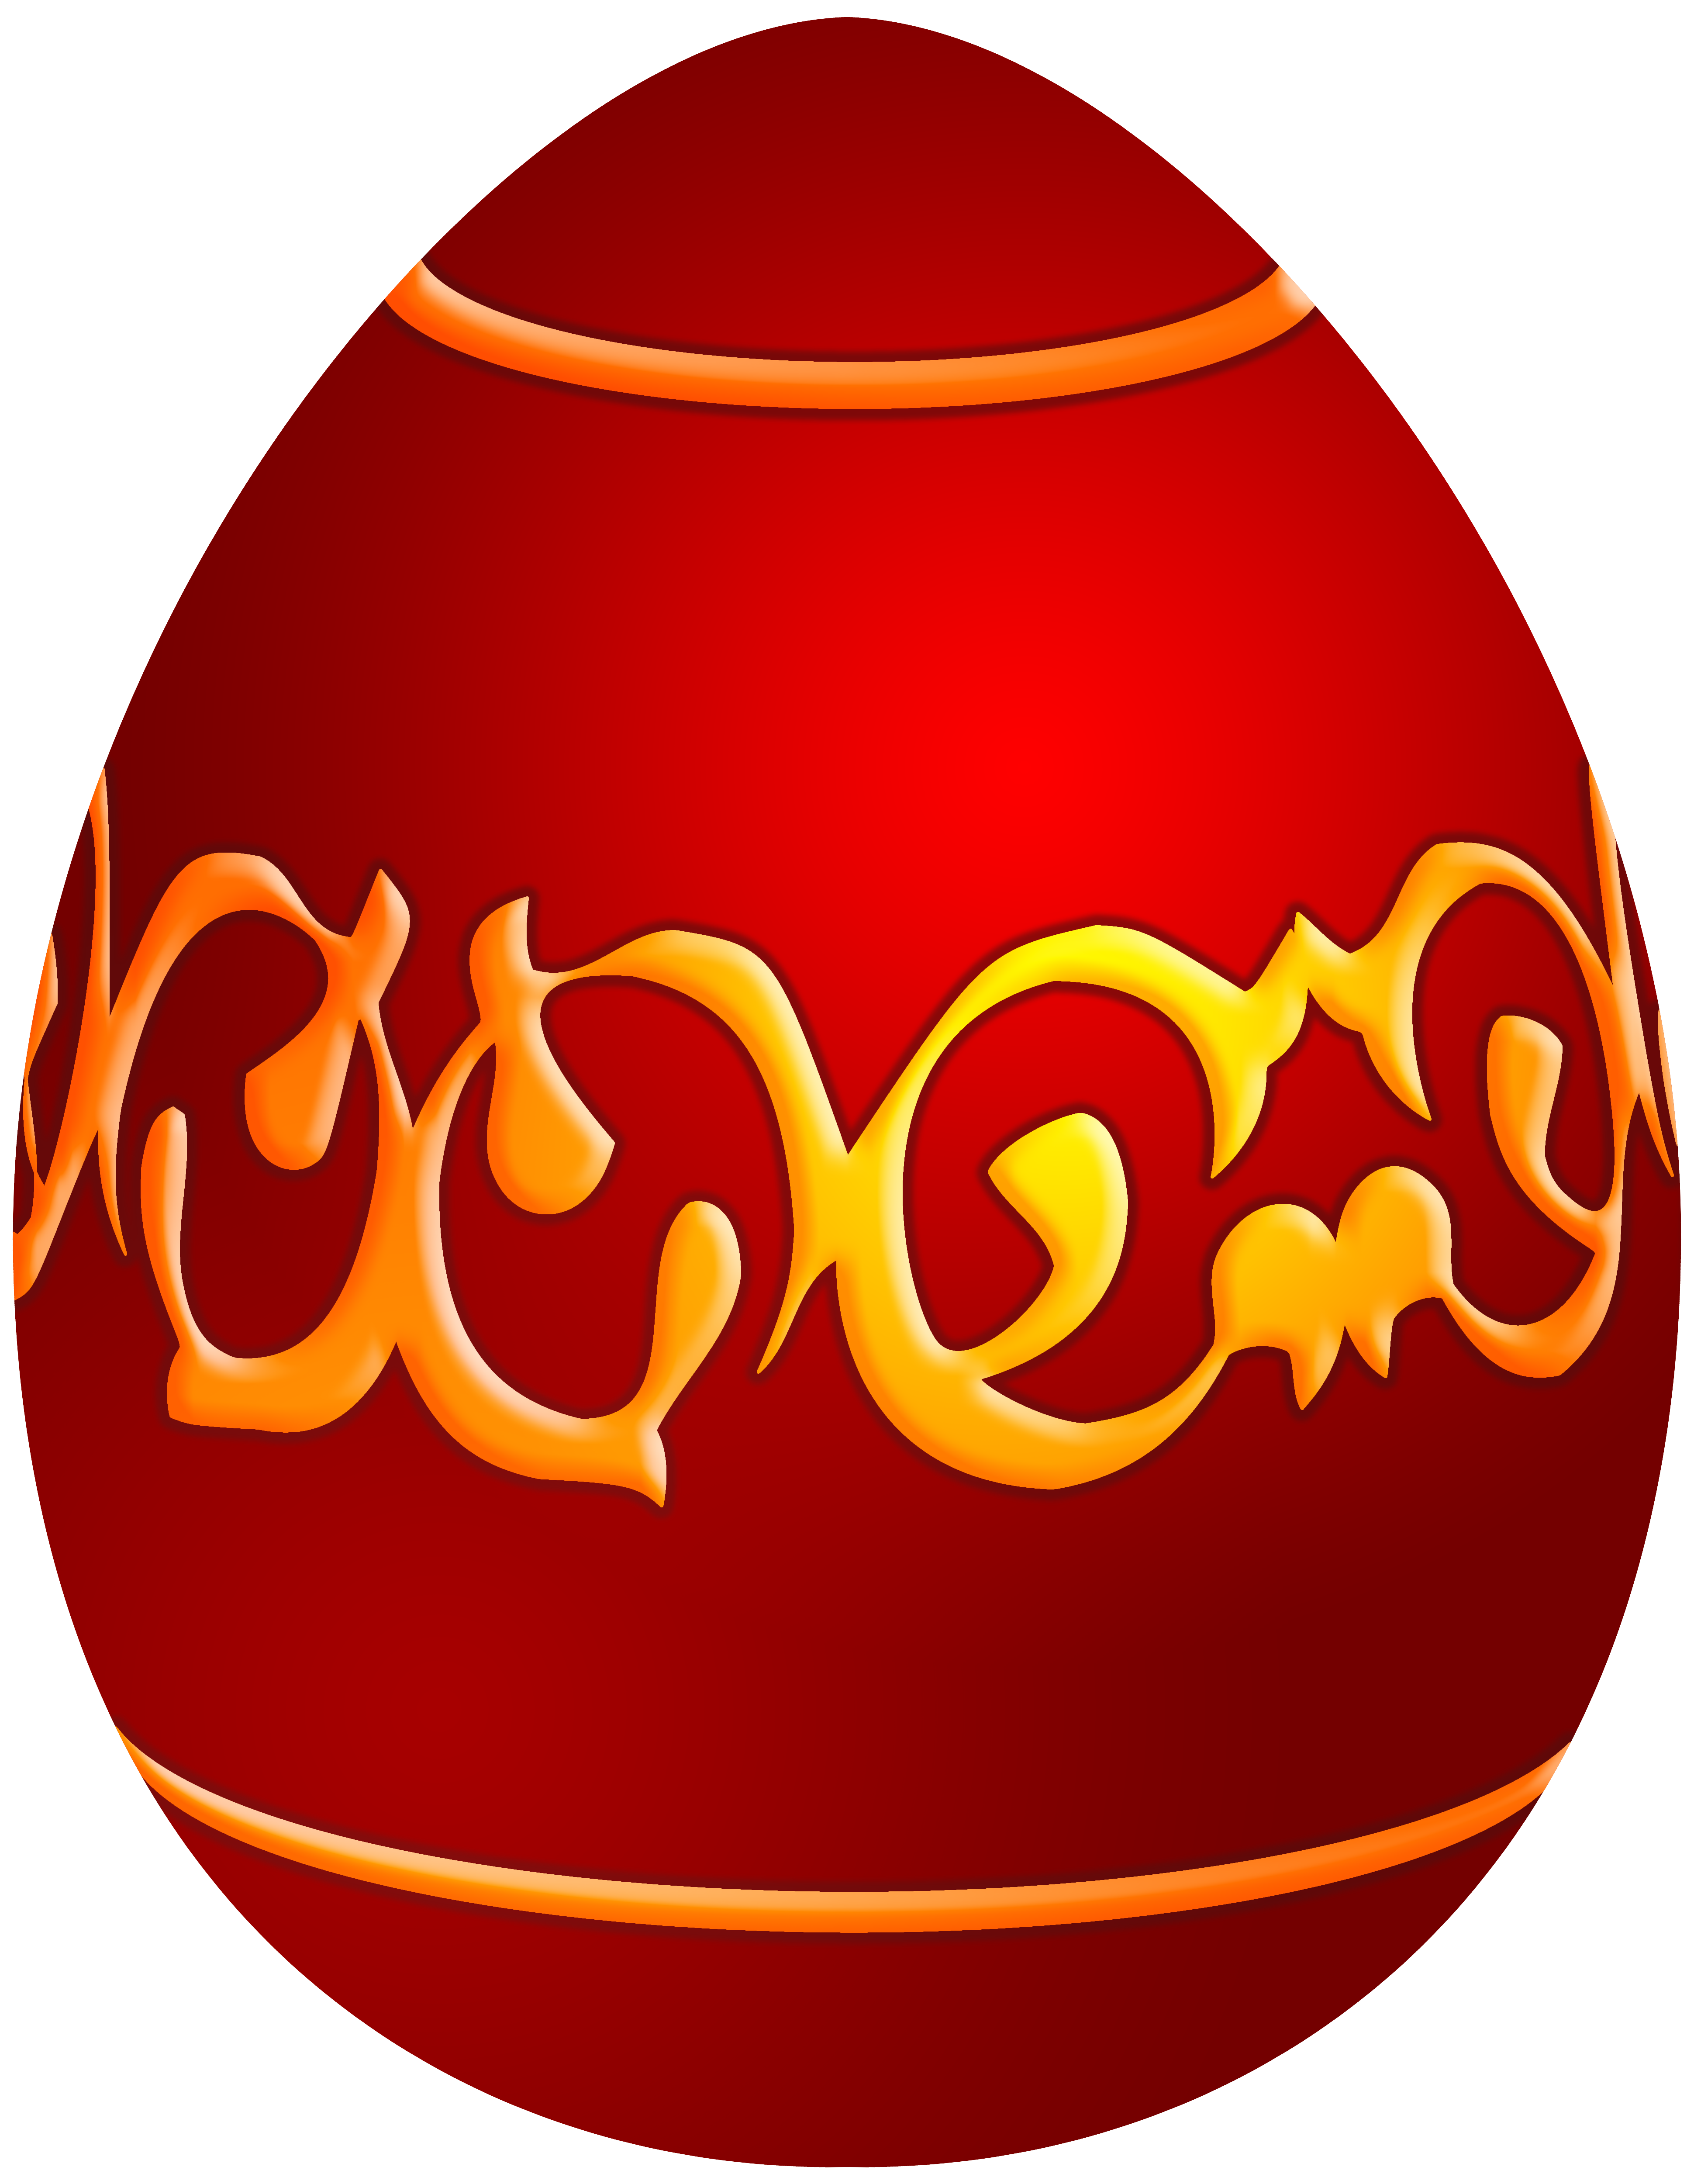 Red decoration clipart image freeuse stock Easter Decorative Red Egg PNG Clip Art - Best WEB Clipart image freeuse stock